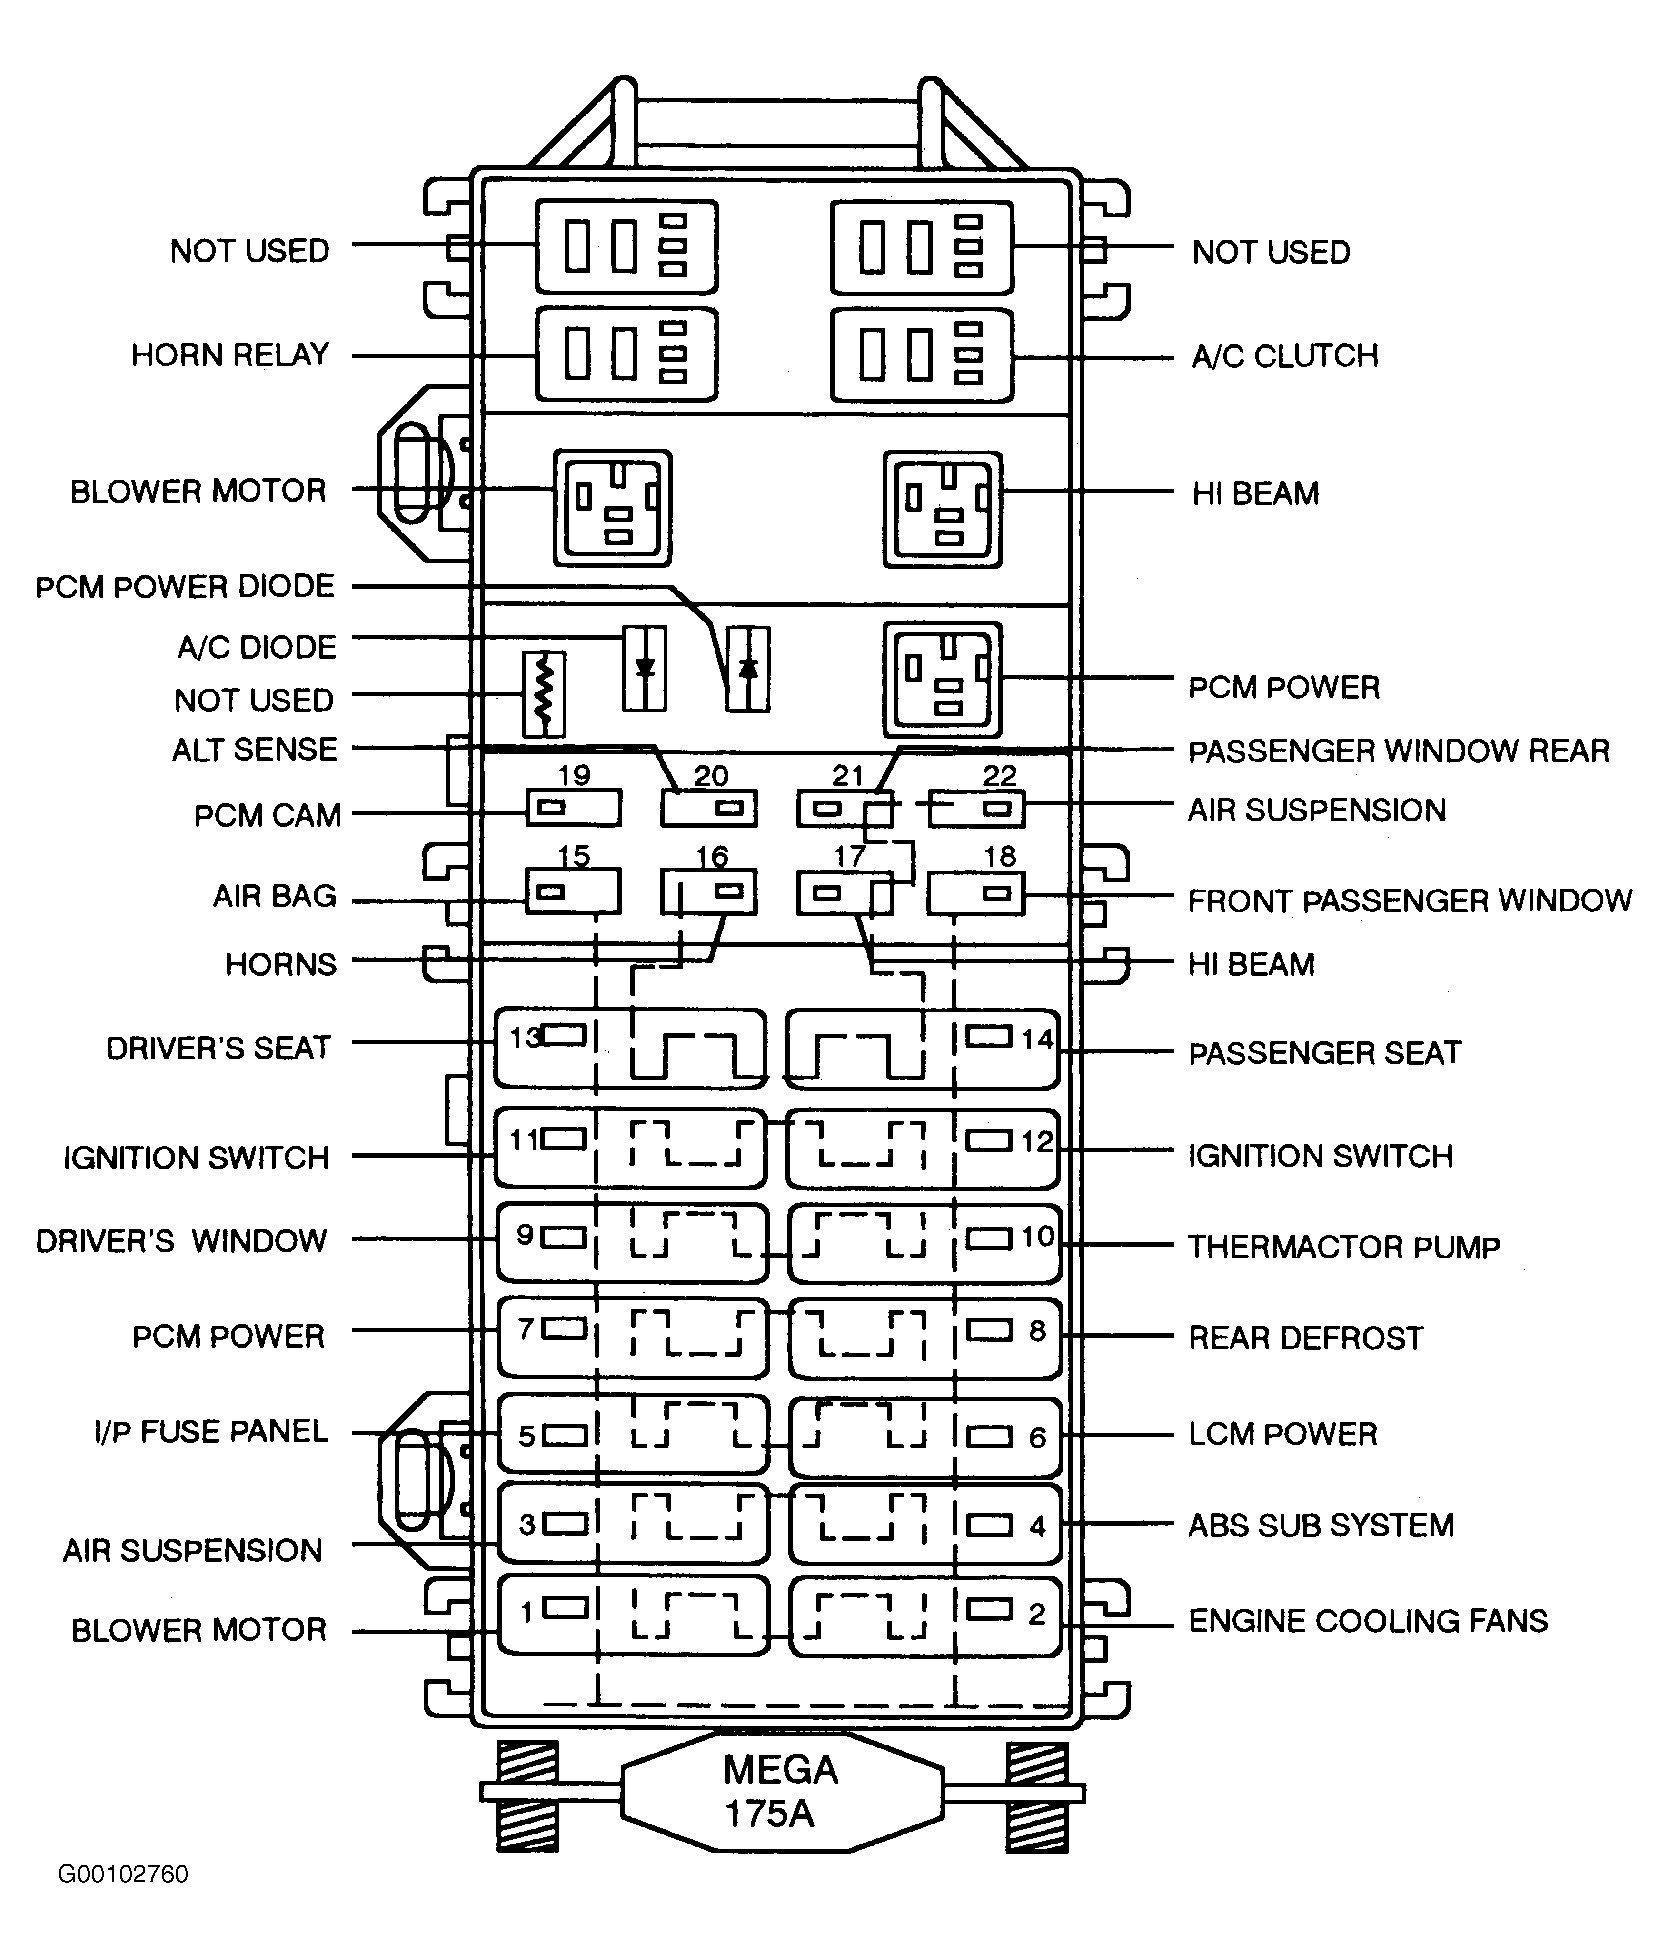 hight resolution of 1998 lincoln continental fuse panel diagram wiring diagram toolbox lincoln navigator 2004 fuse box diagram 1998